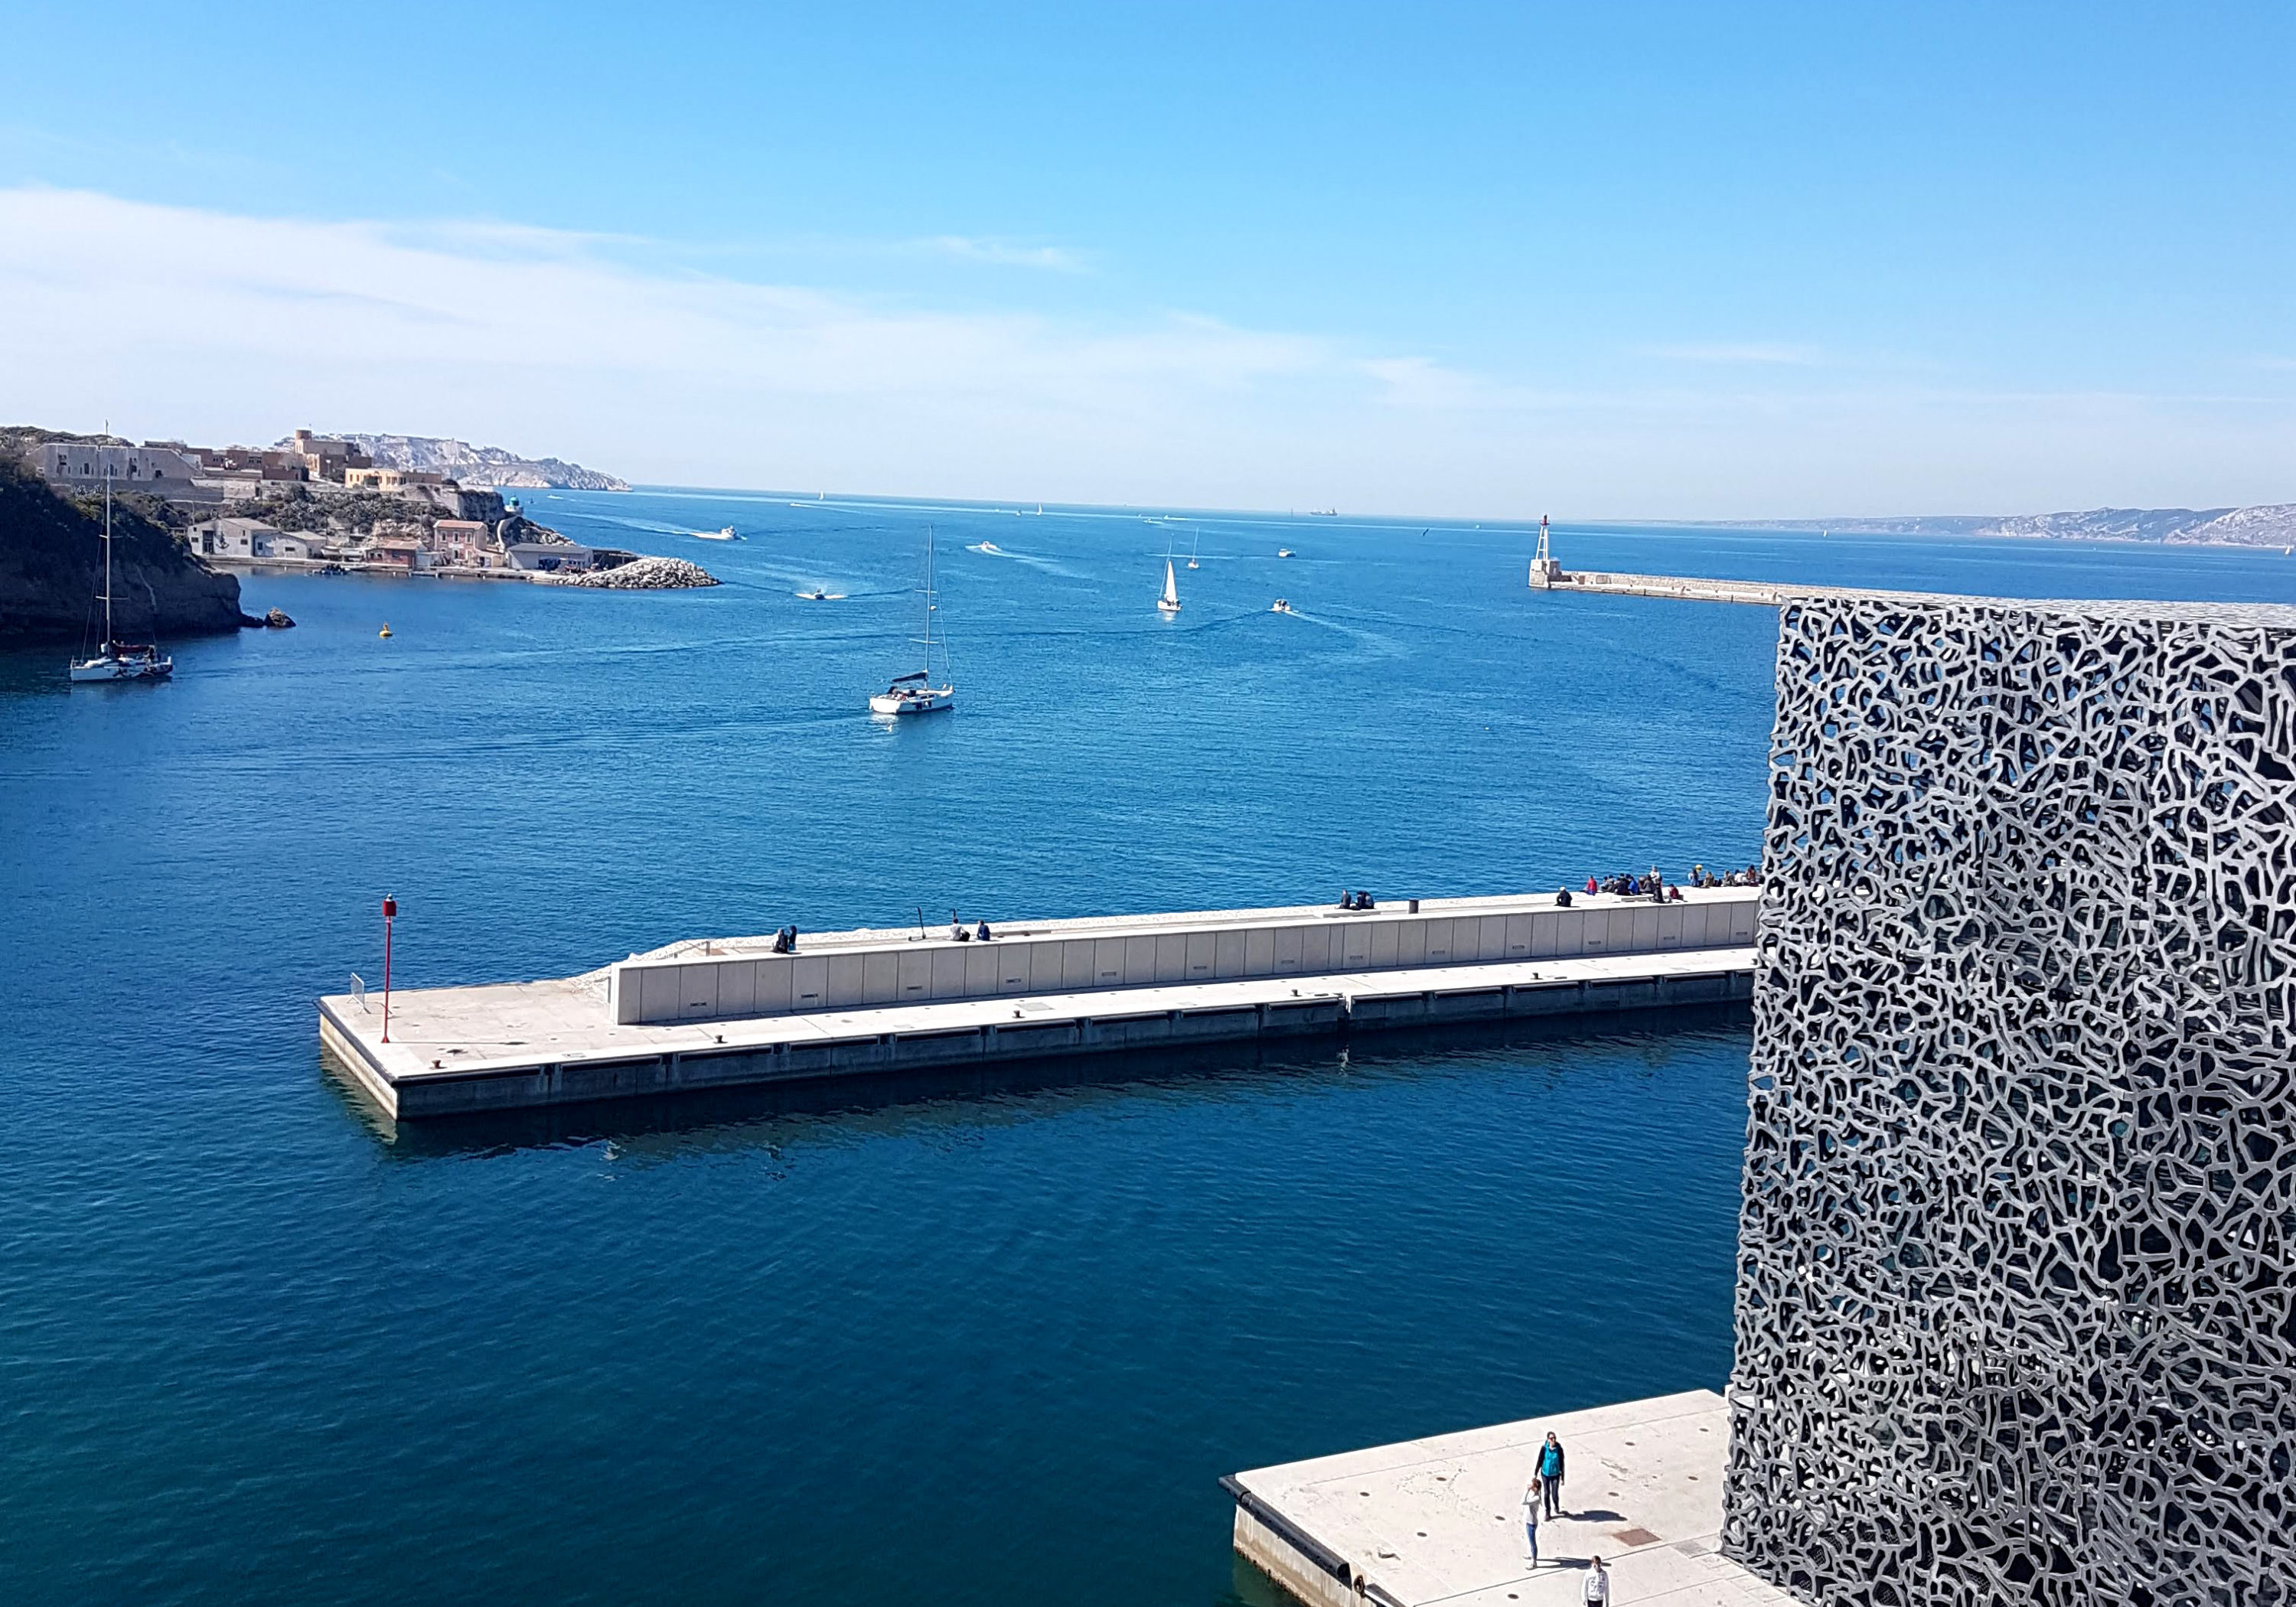 Marseille & the Mucem, its modern museum facing the Mediterranean Sea